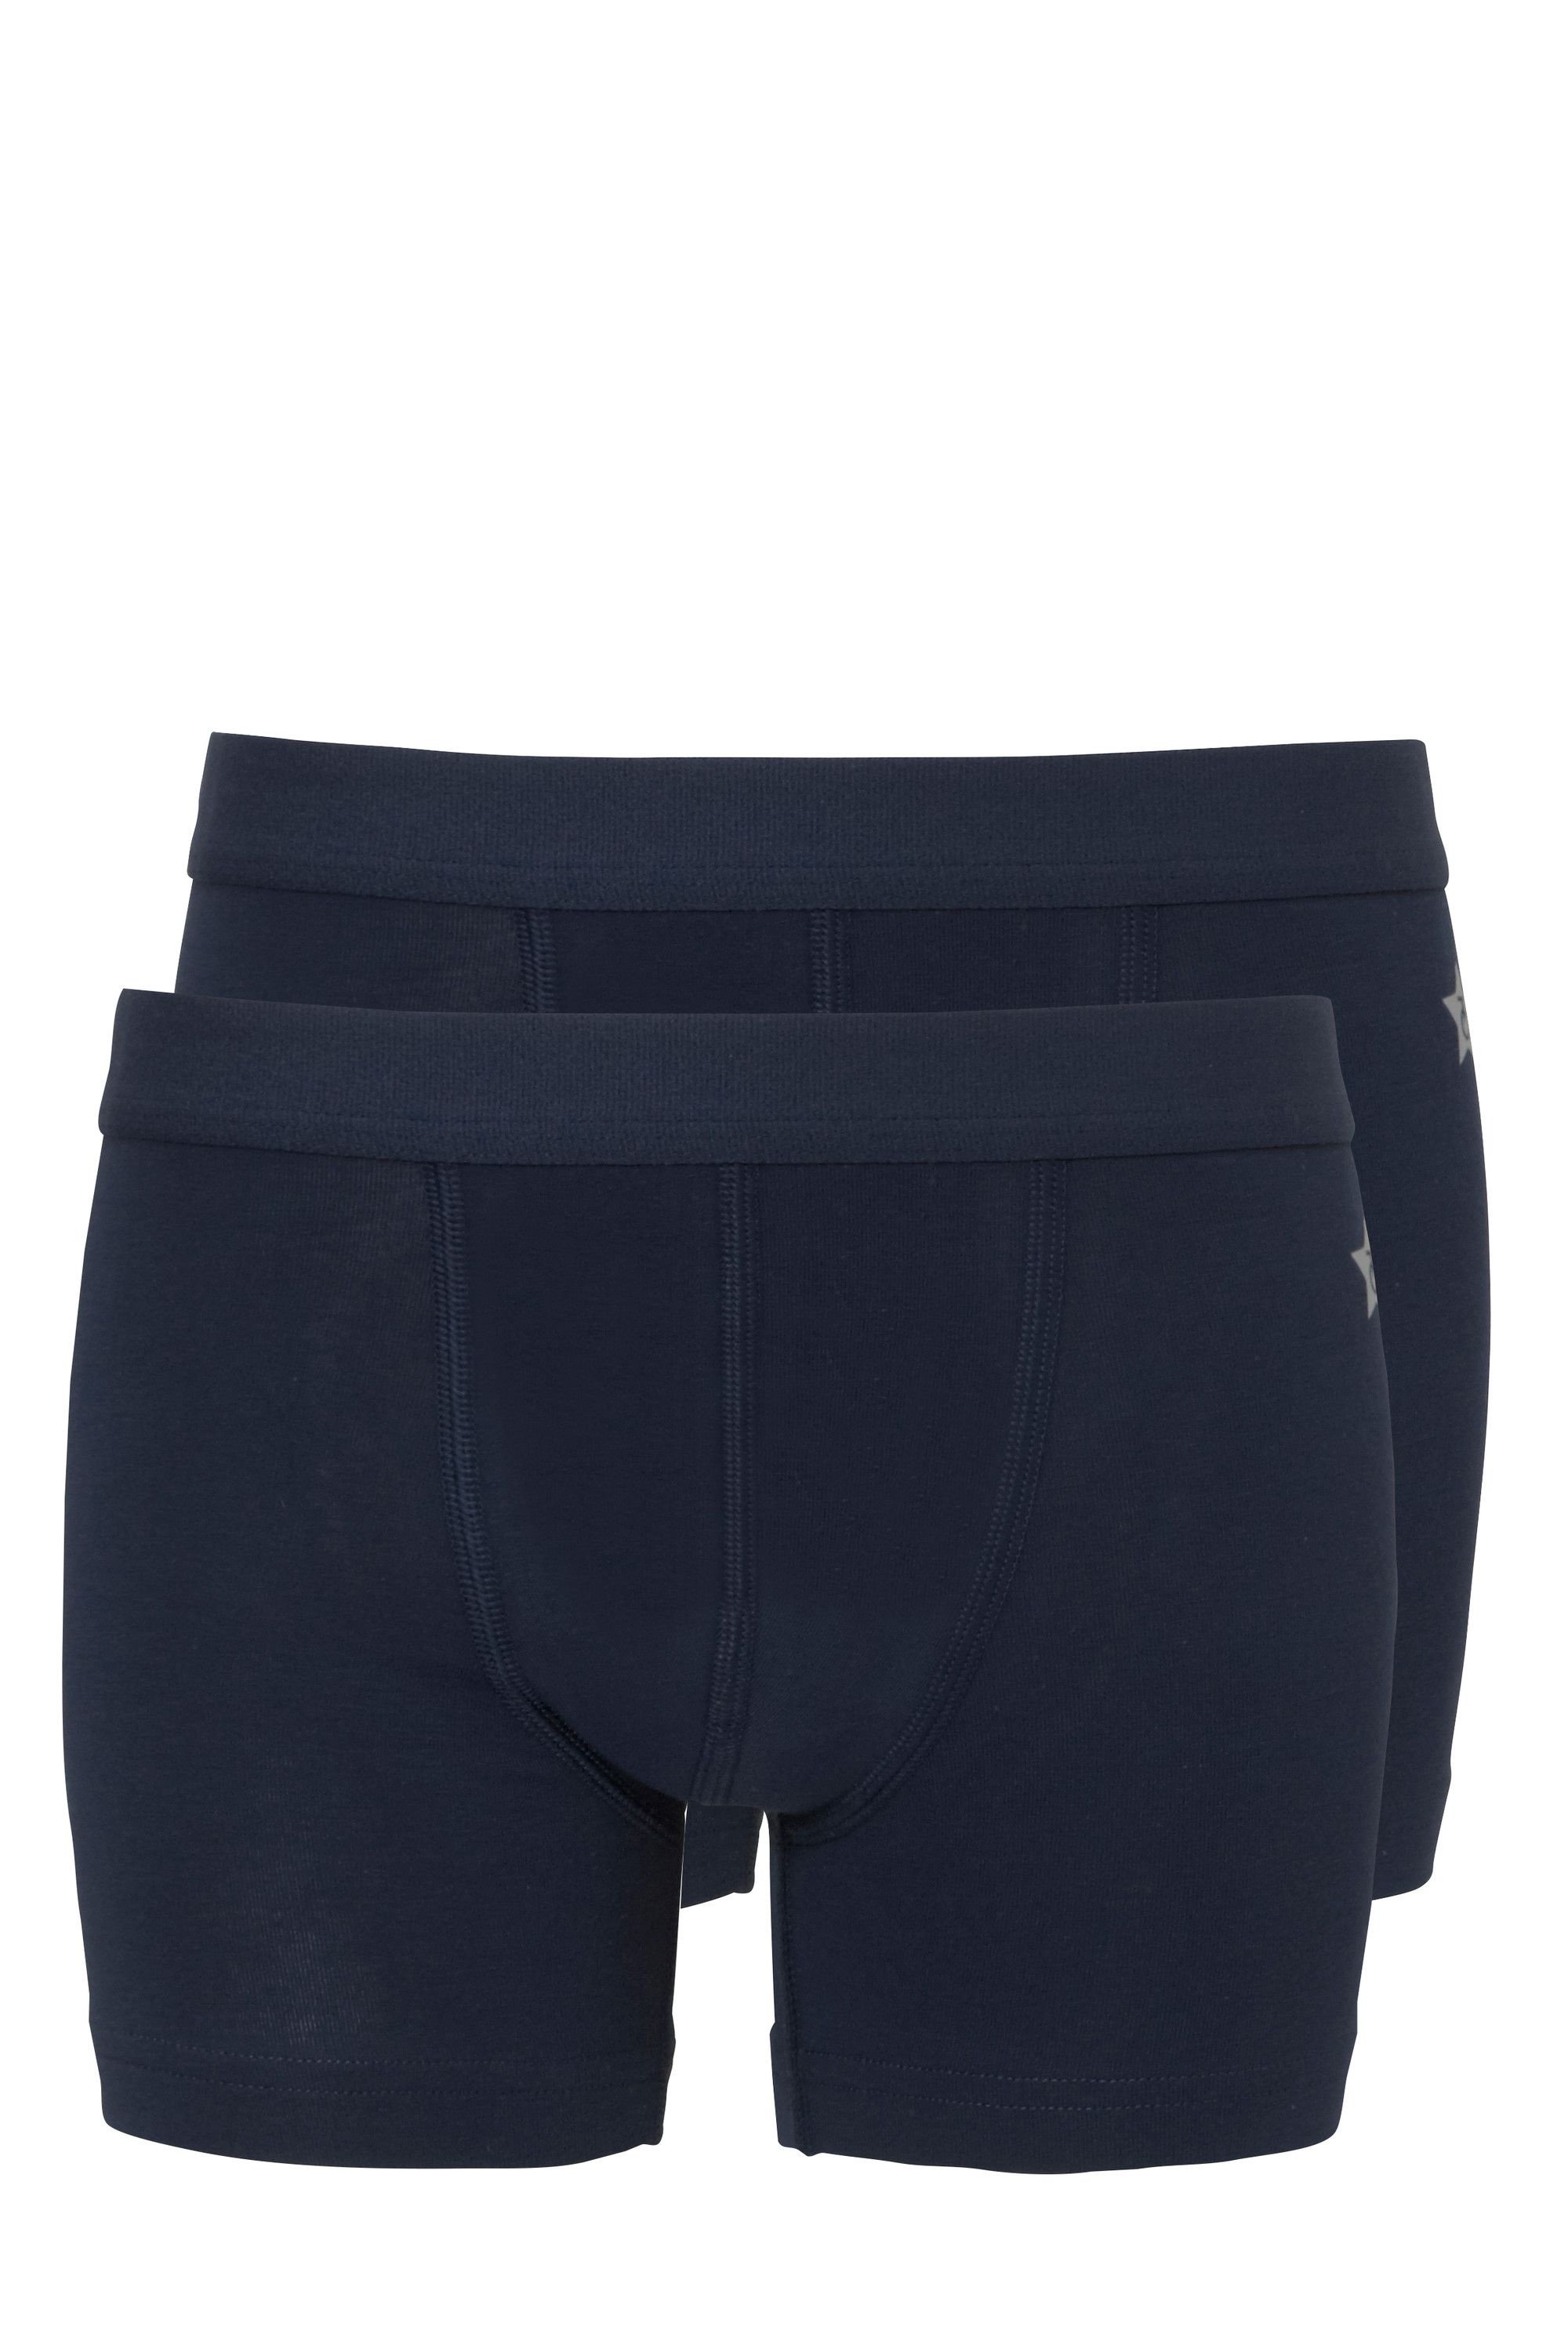 Ten Cate 2-pack Boys Basic Short Donker Blauw